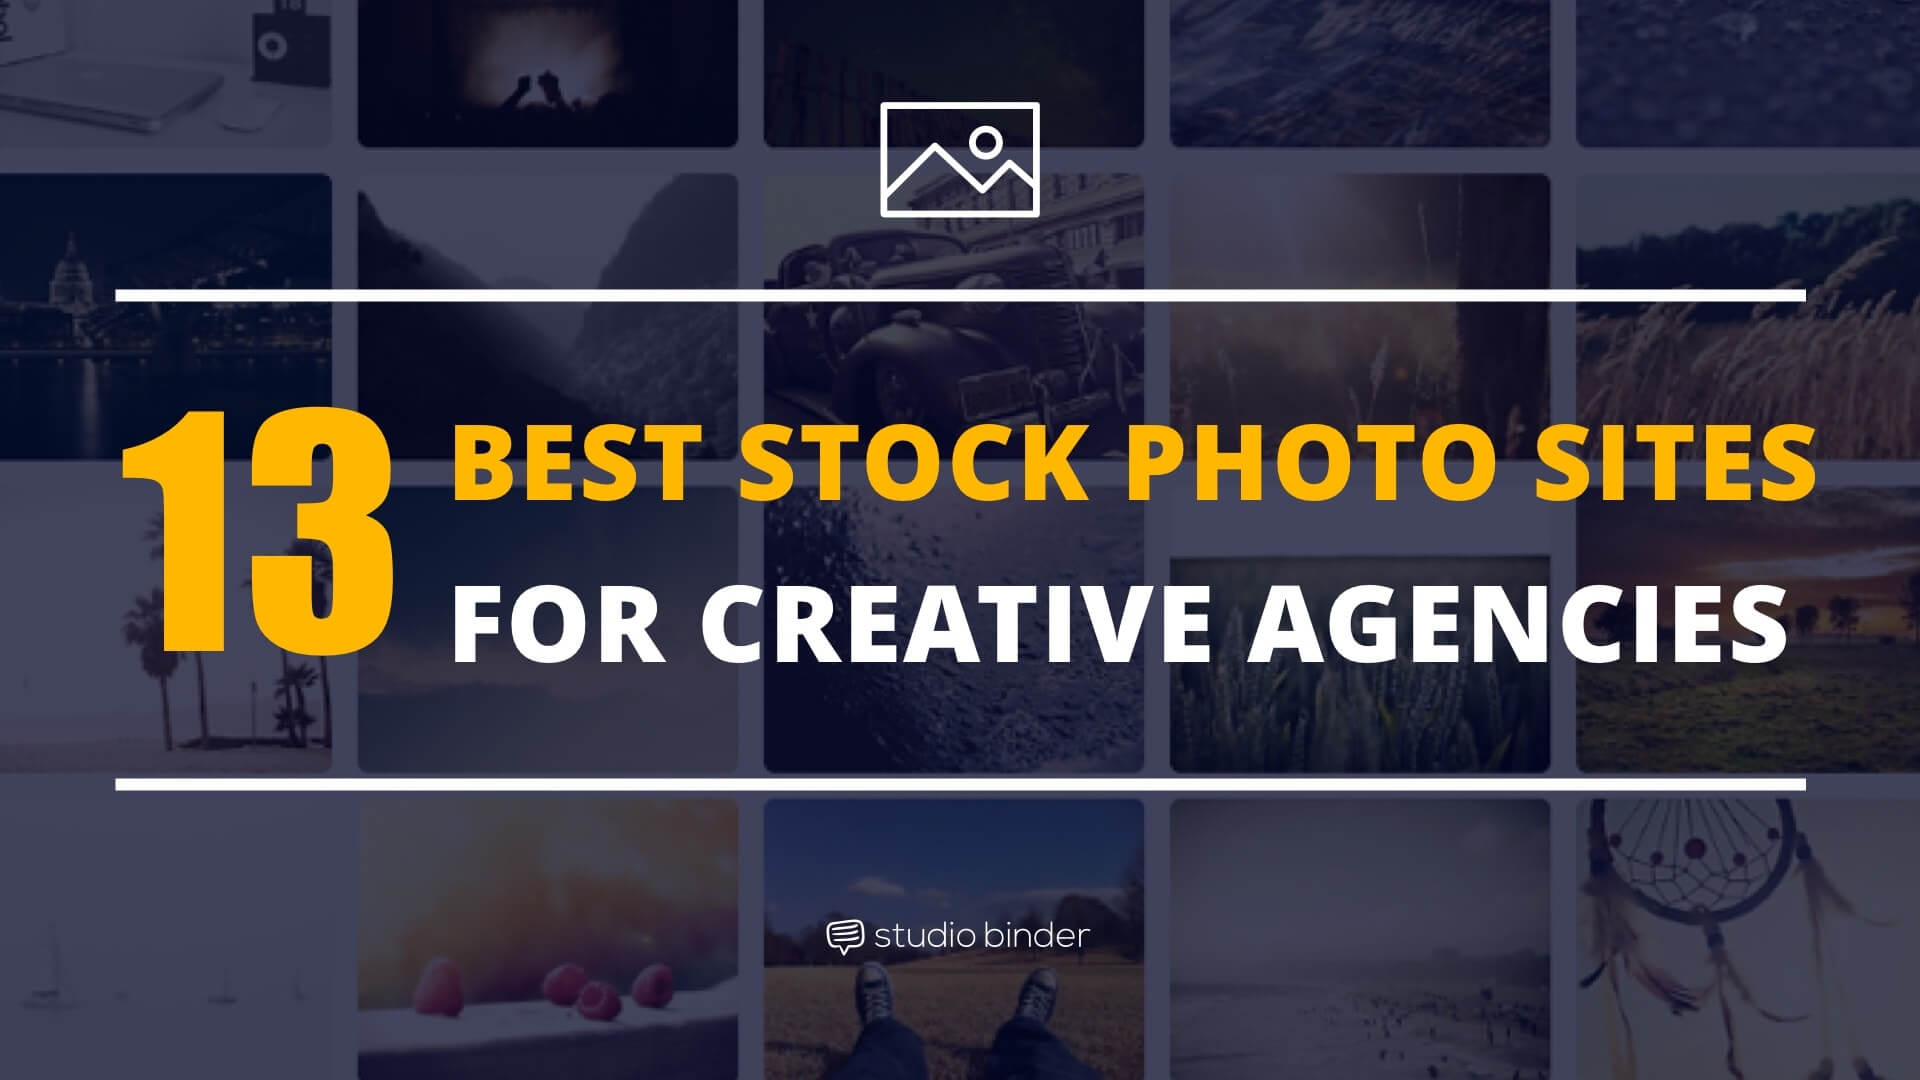 13 Best Stock Photo Sites For Creative Agencies